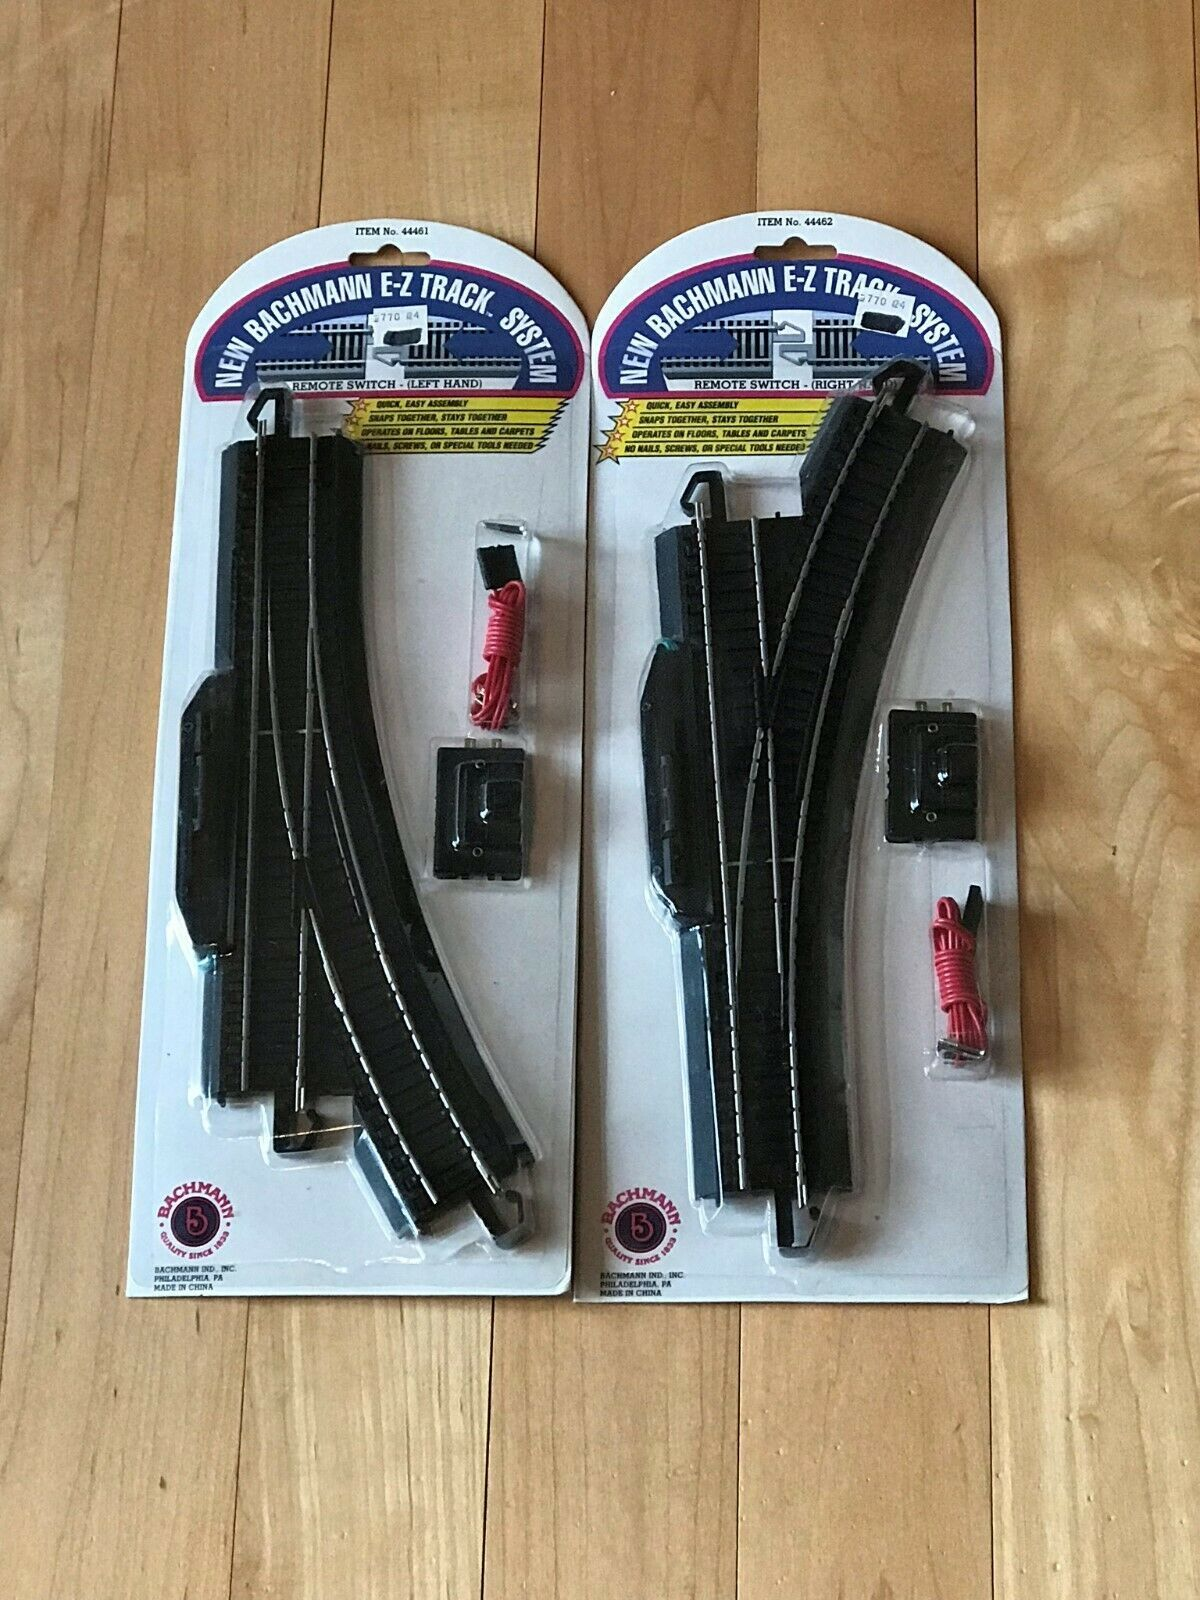 hight resolution of track 97168 ho scale bachmann e z train track left and right remote switch 44461 44462 new buy it now only 50 on ebay track scale bachmann train